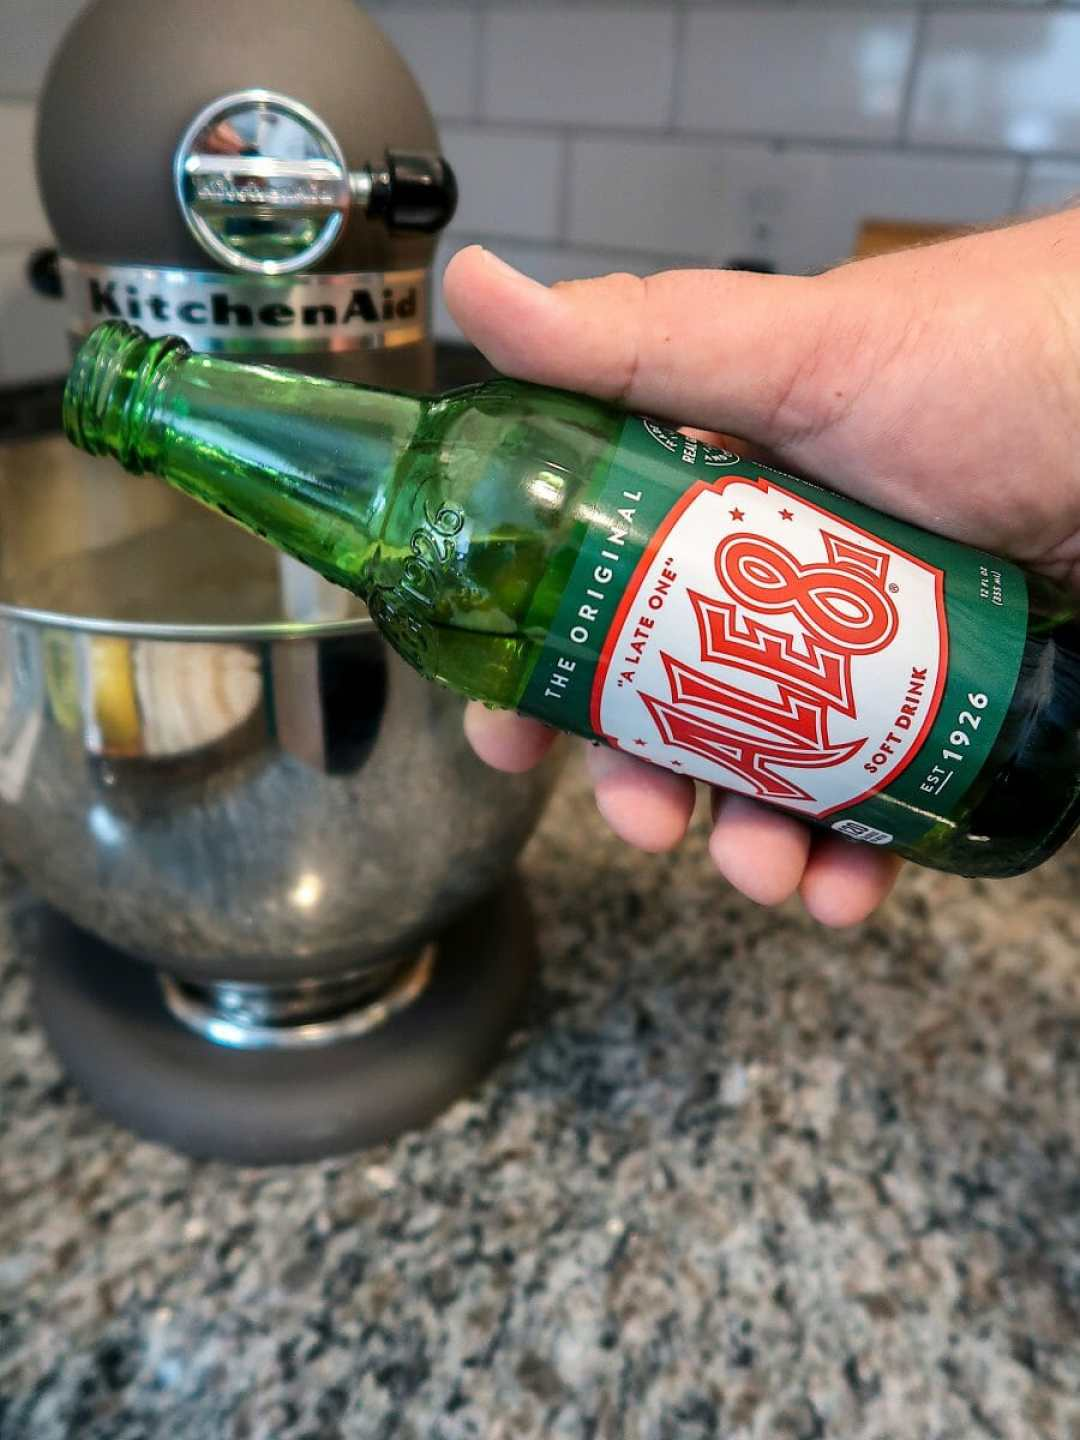 Ale-8-One and mixing bowl